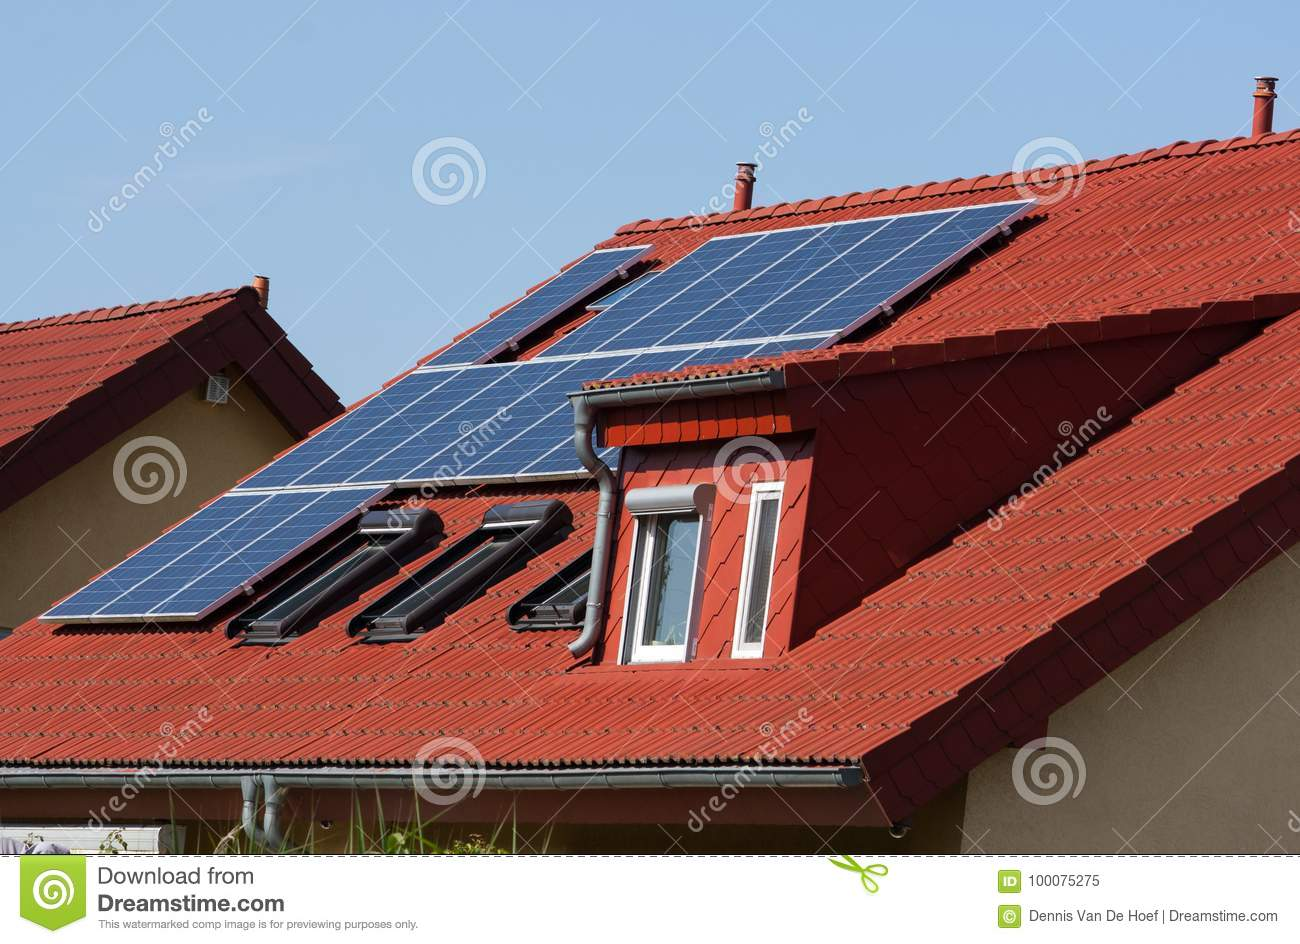 Solar systems on a roof.